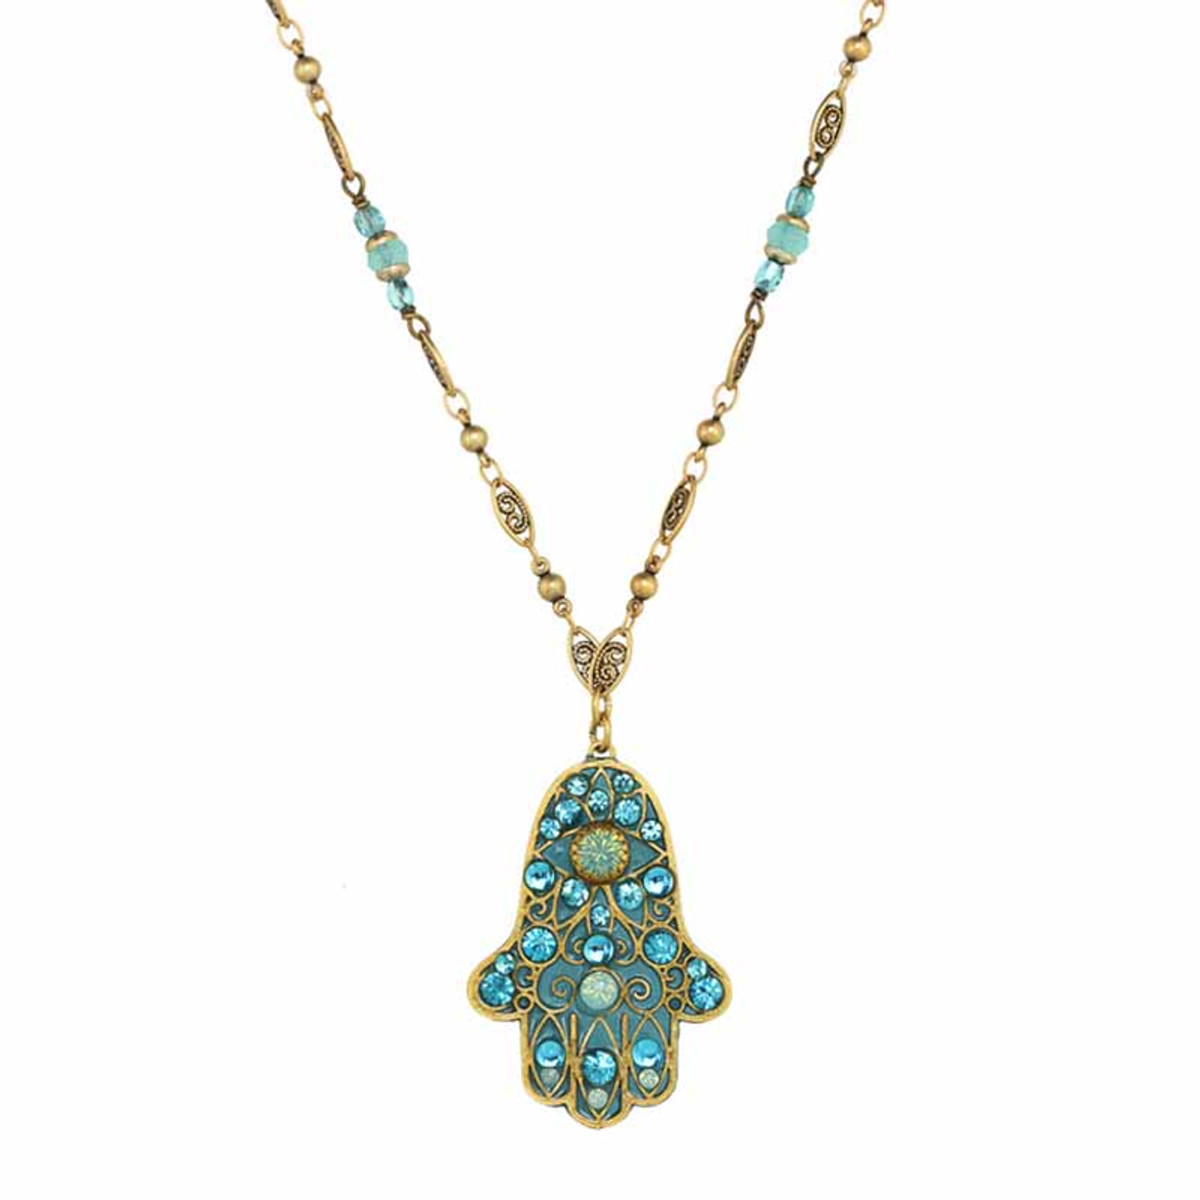 Michal Golan Large light blue hamsa necklace on single chain